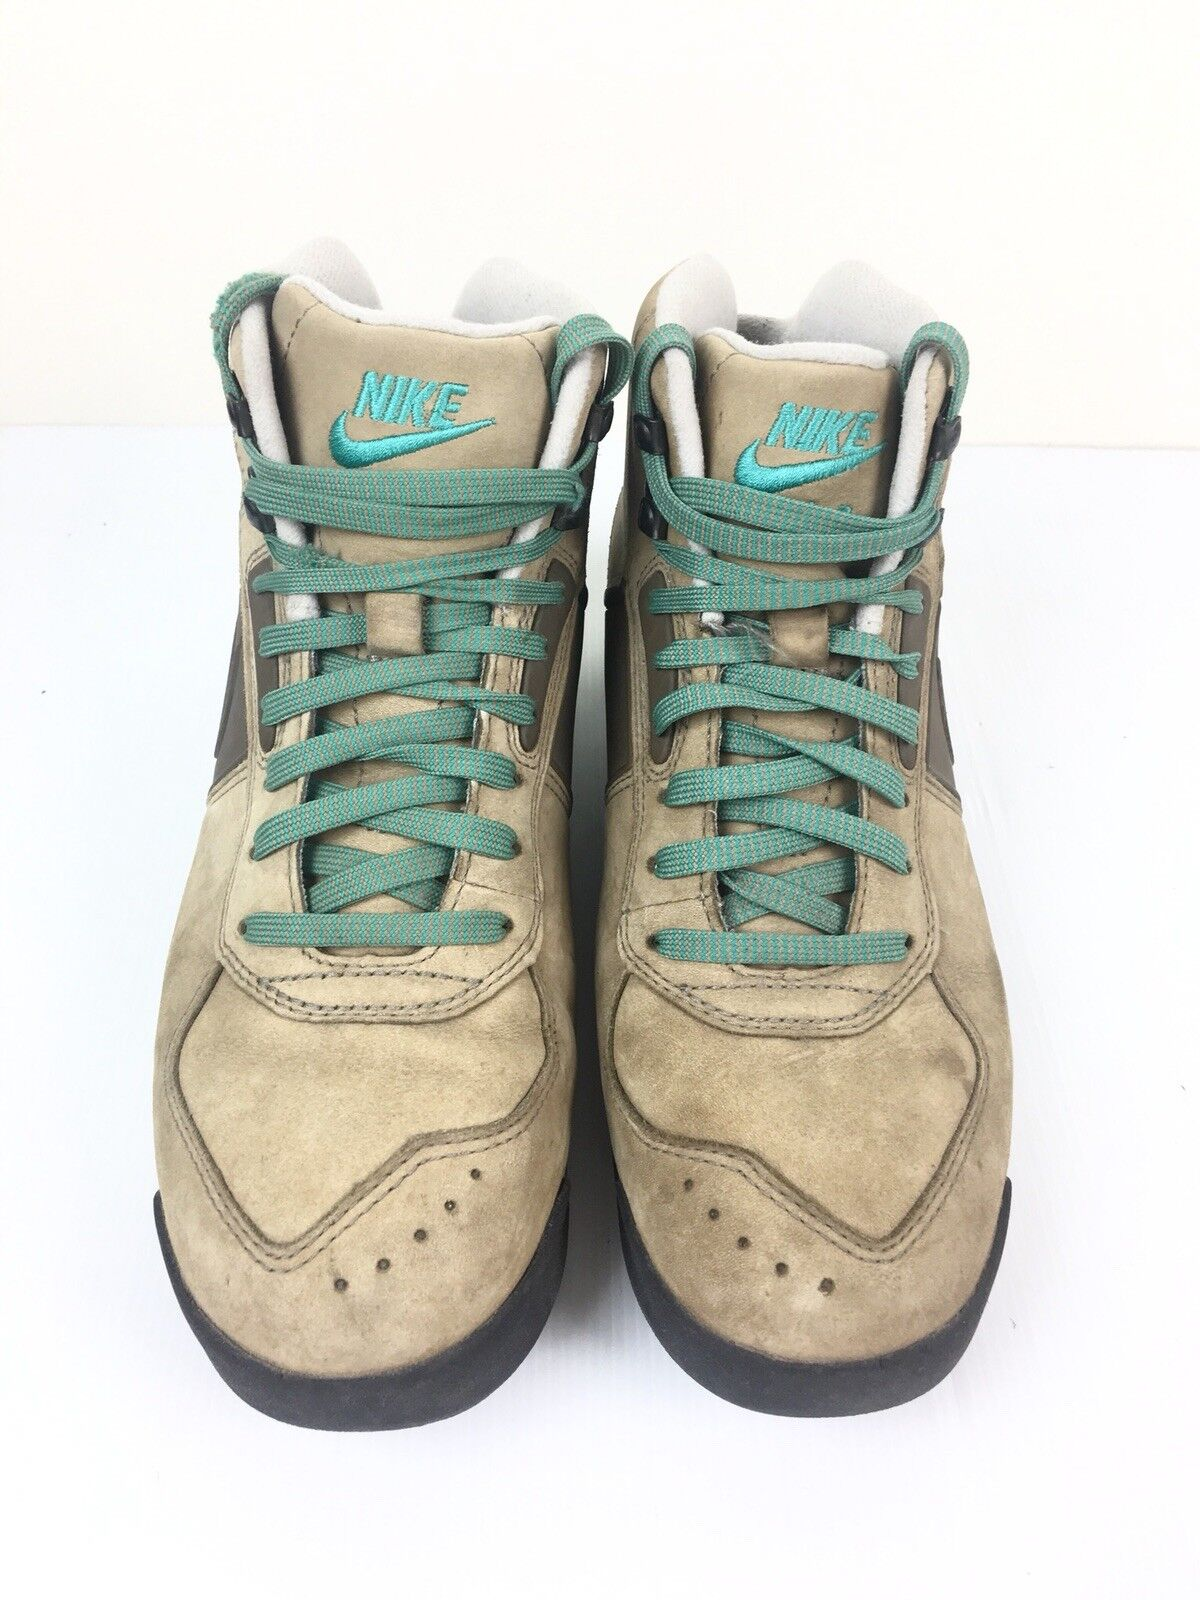 Nike Mens Air Baltgold Hiking shoes Size US 8.5